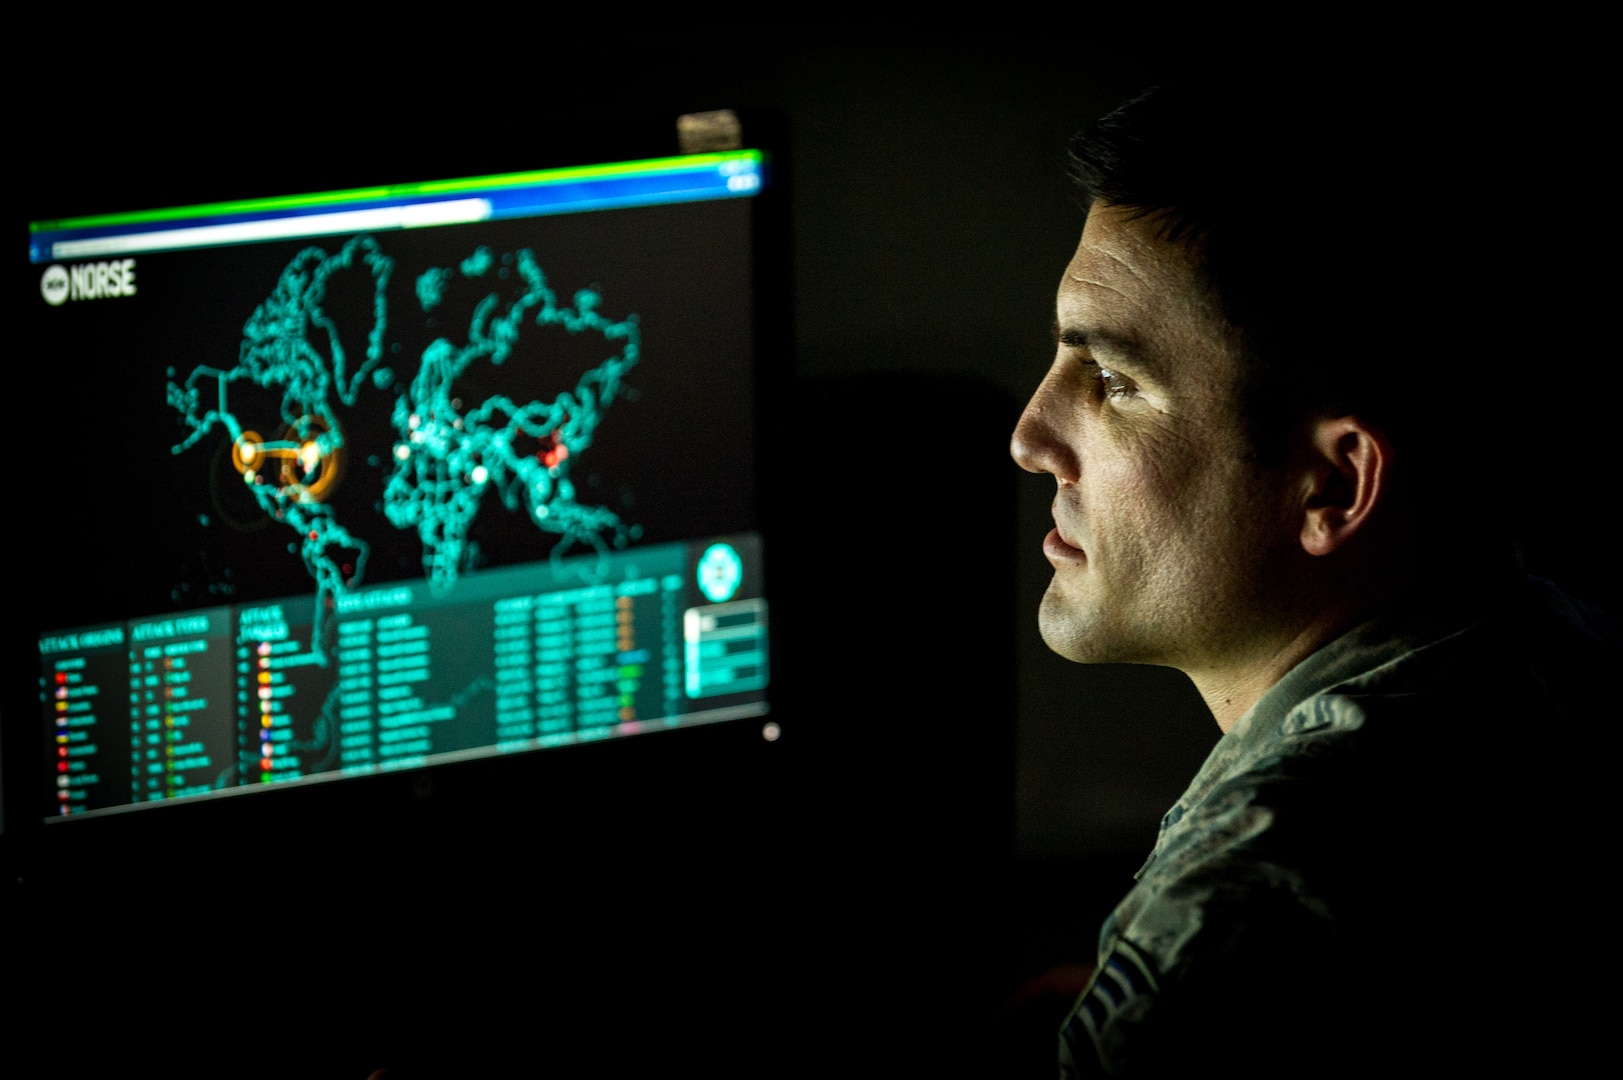 Cyber warfare operations journeyman monitors live cyber attacks on operations floor of 27th Cyberspace Squadron at Warfield Air National Guard Base, Middle River, Maryland, June 3, 2017 (U.S. Air Force/J.M. Eddins, Jr.)